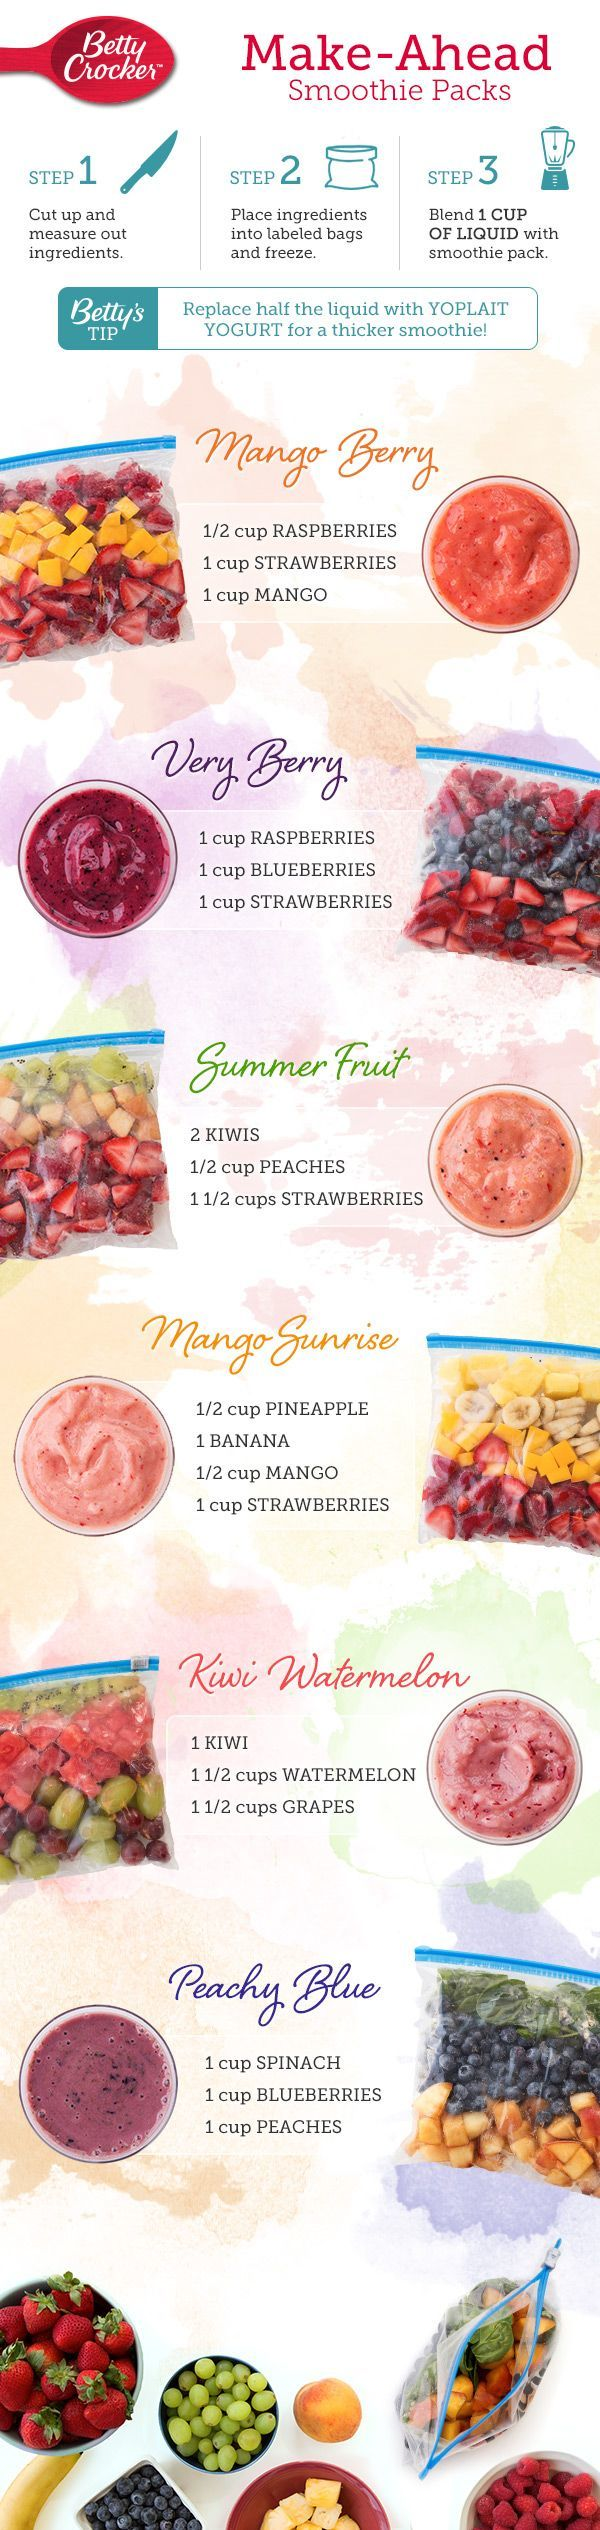 6 Make-Ahead Smoothie Packs